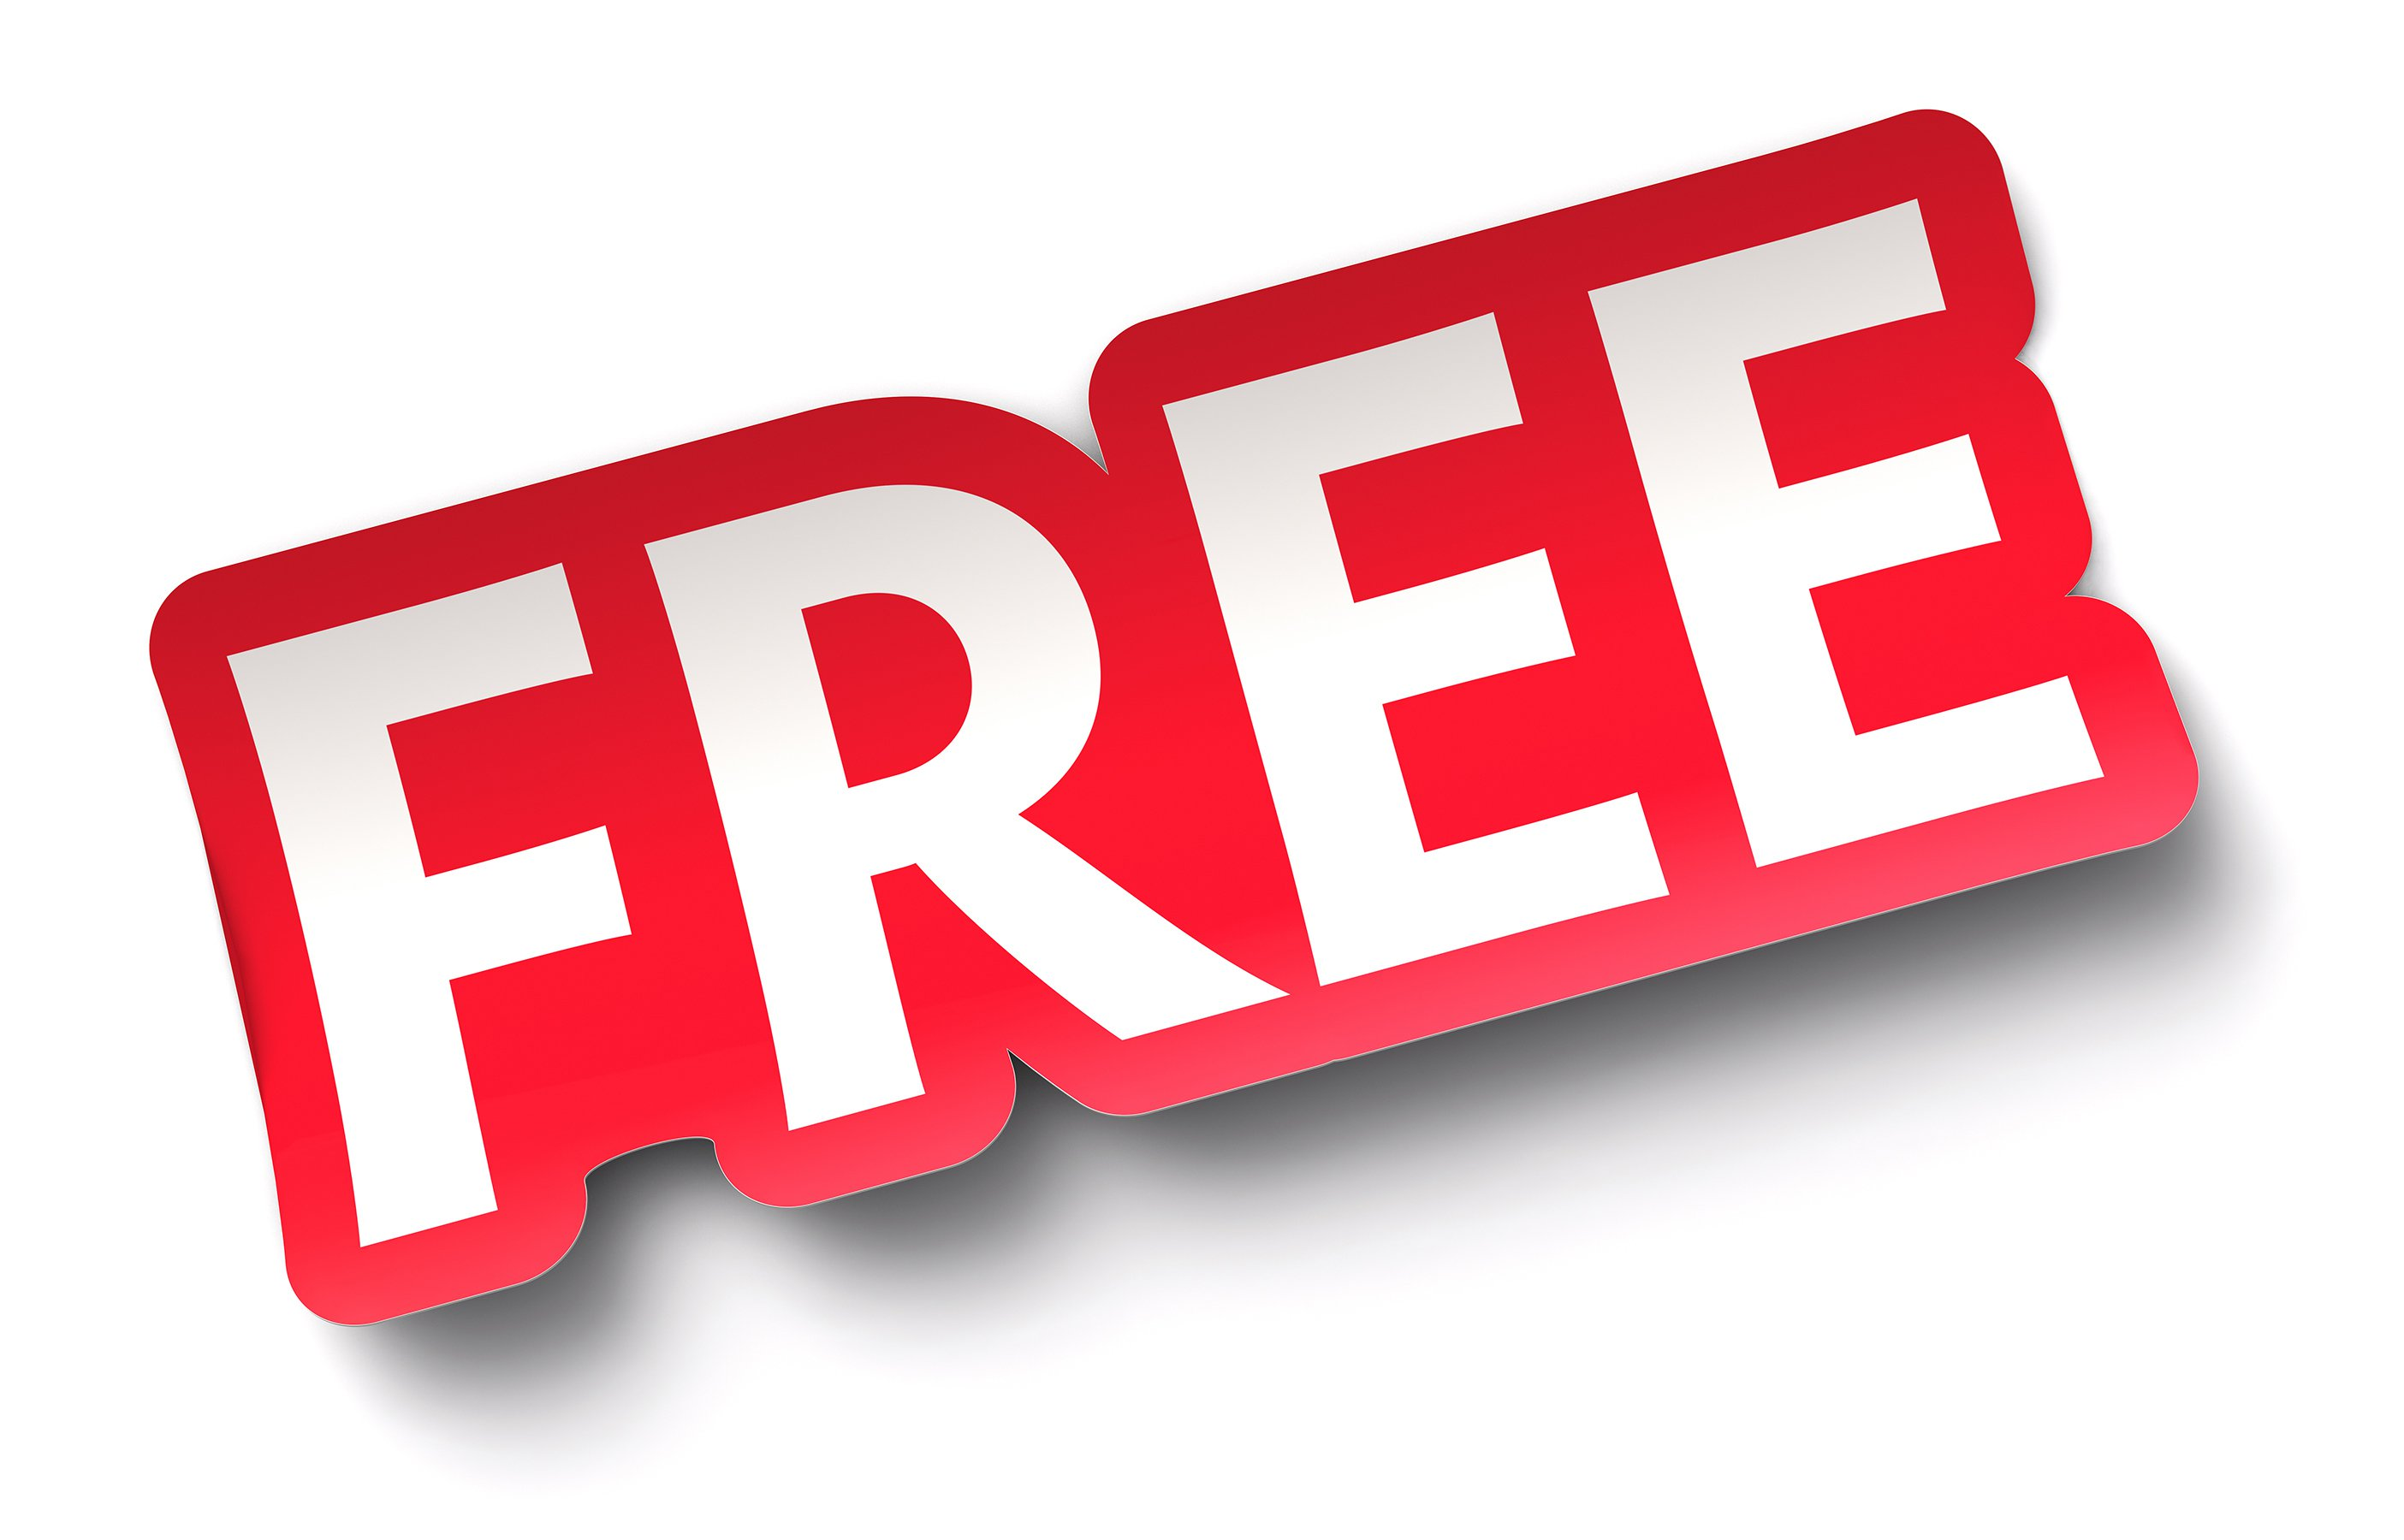 Grab a bargain! Free plastic bags with URC logo | Southern Synod of the  United Reformed Church